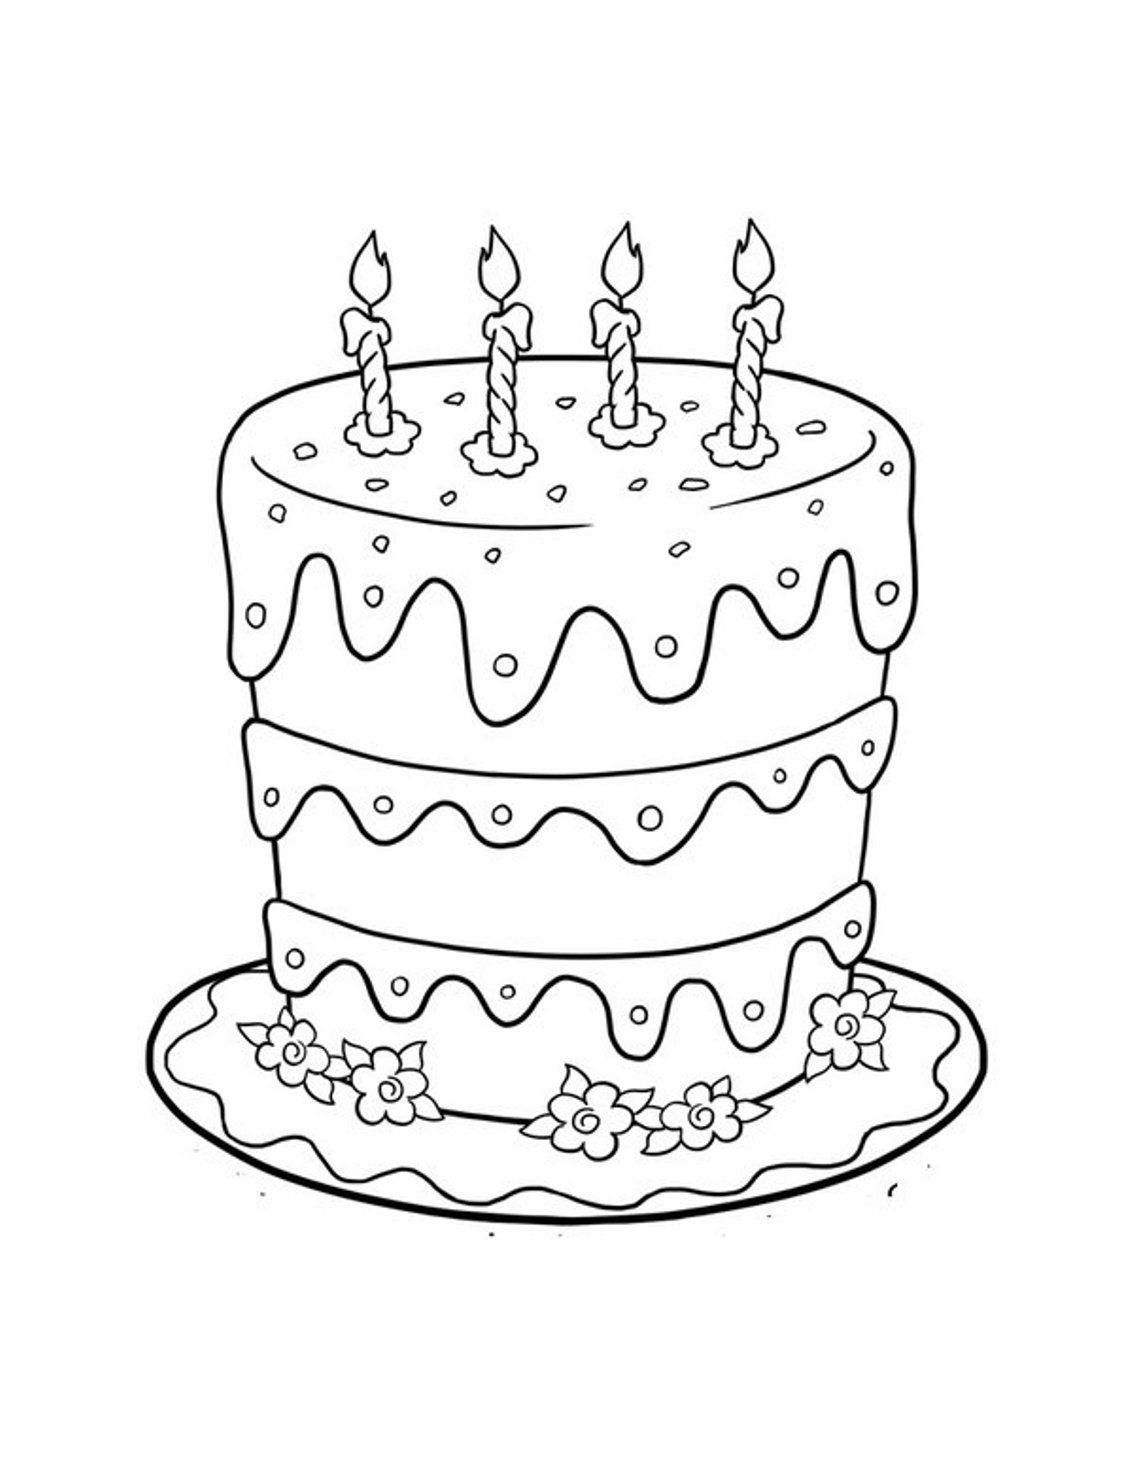 coloring pages cake kids n funcom create personal coloring page of birthday pages coloring cake